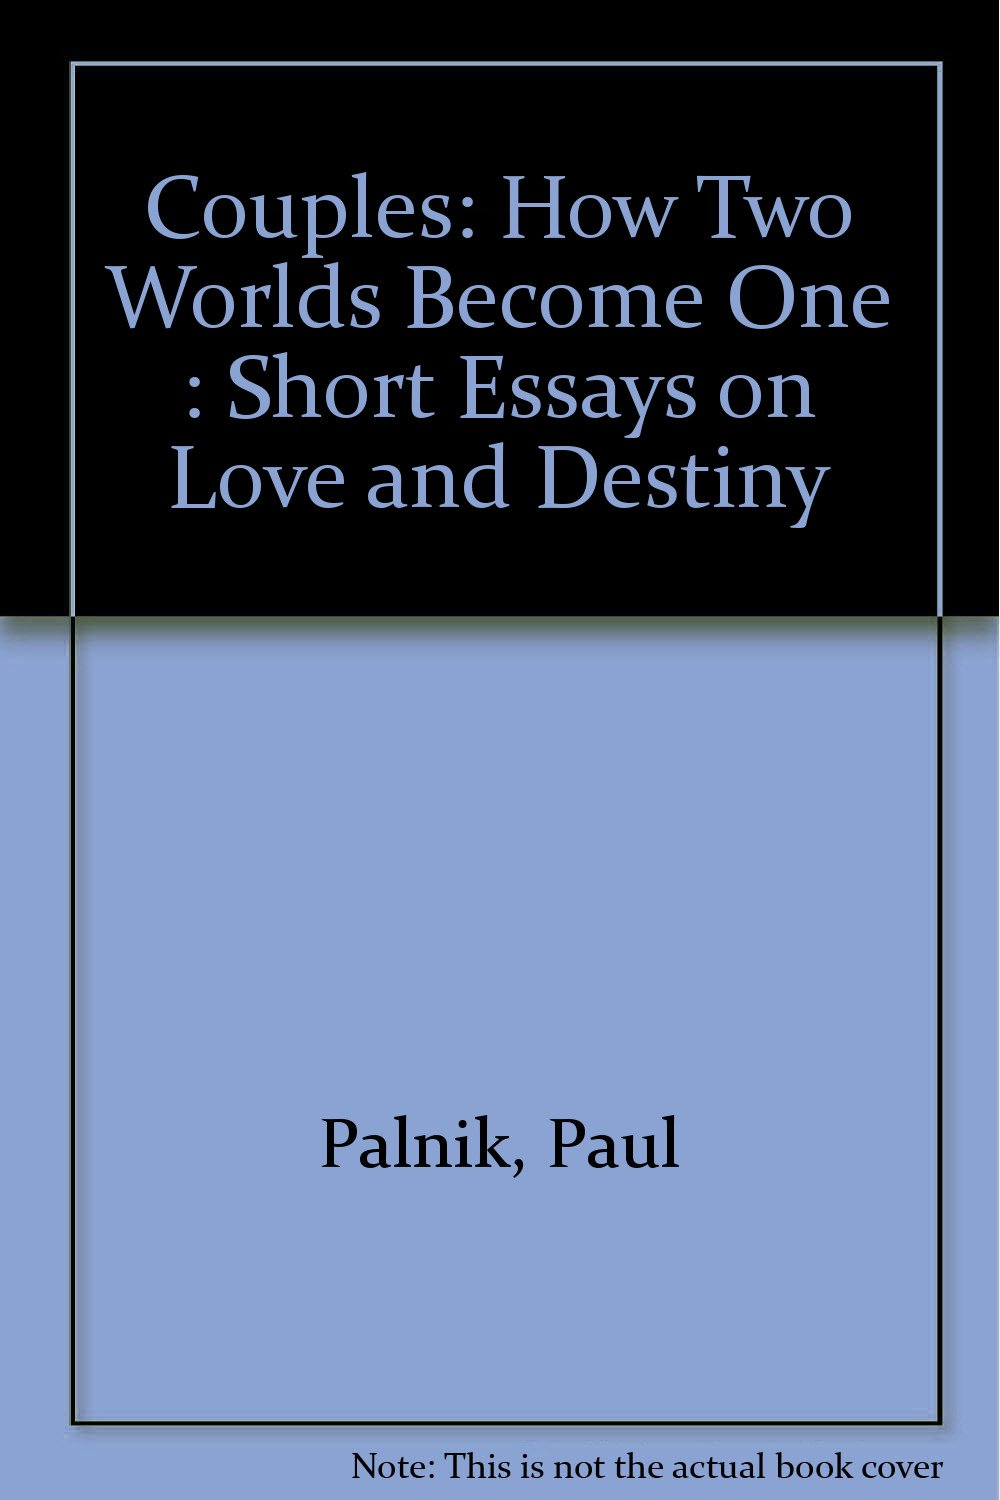 couples how two worlds become one short essays on love and couples how two worlds become one short essays on love and destiny amazon co uk paul palnik 9780440513032 books